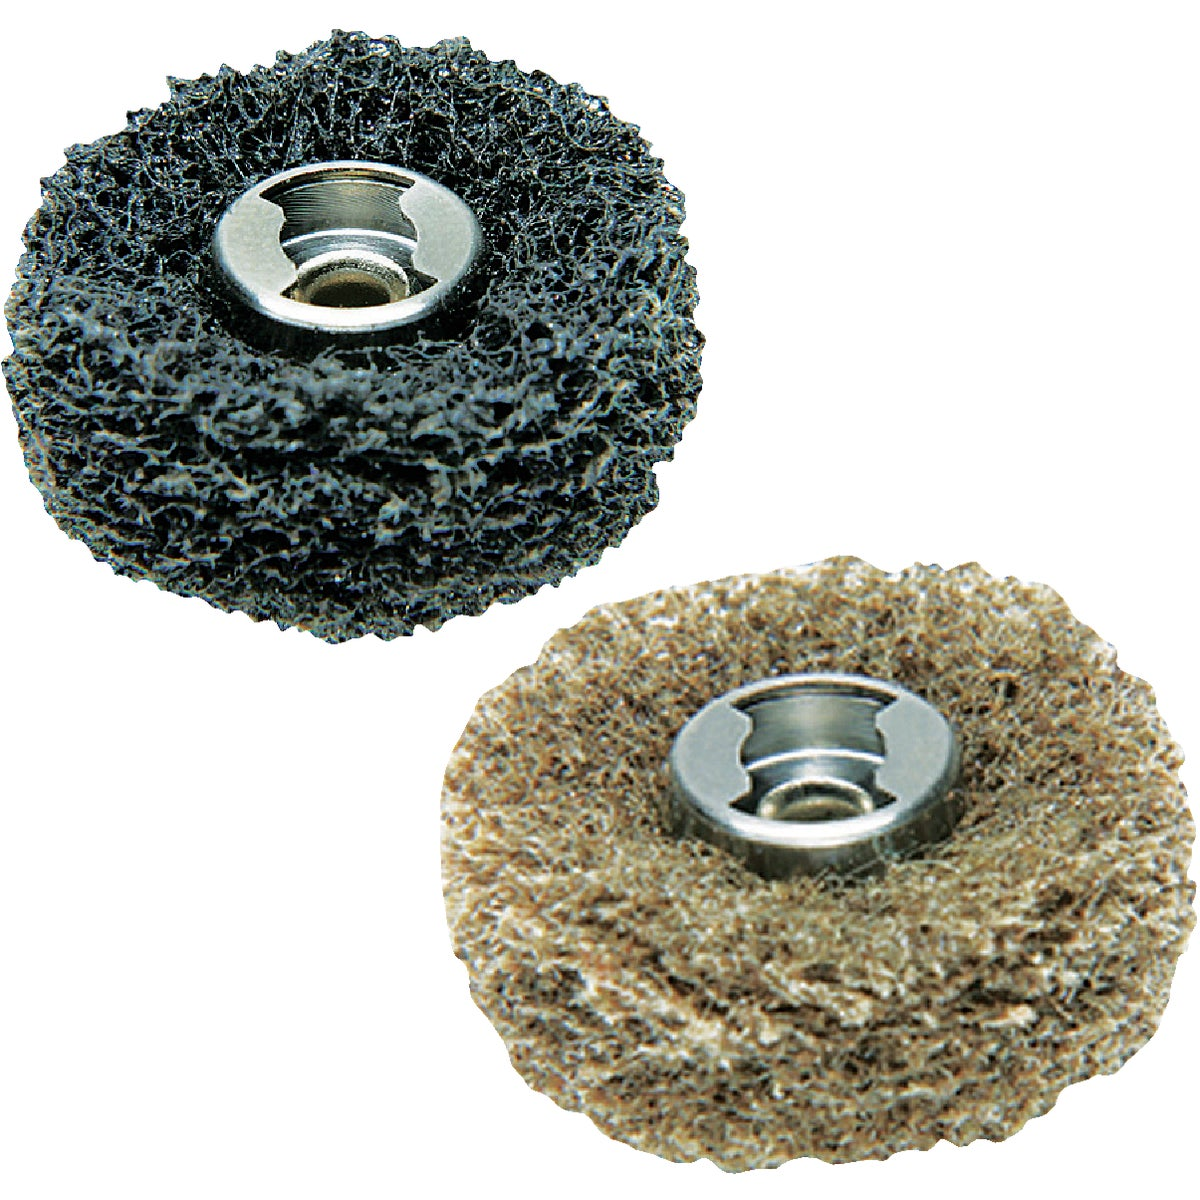 EZ LOCK ABRASIVE WHEEL - 511E by Dremel Mfg Co